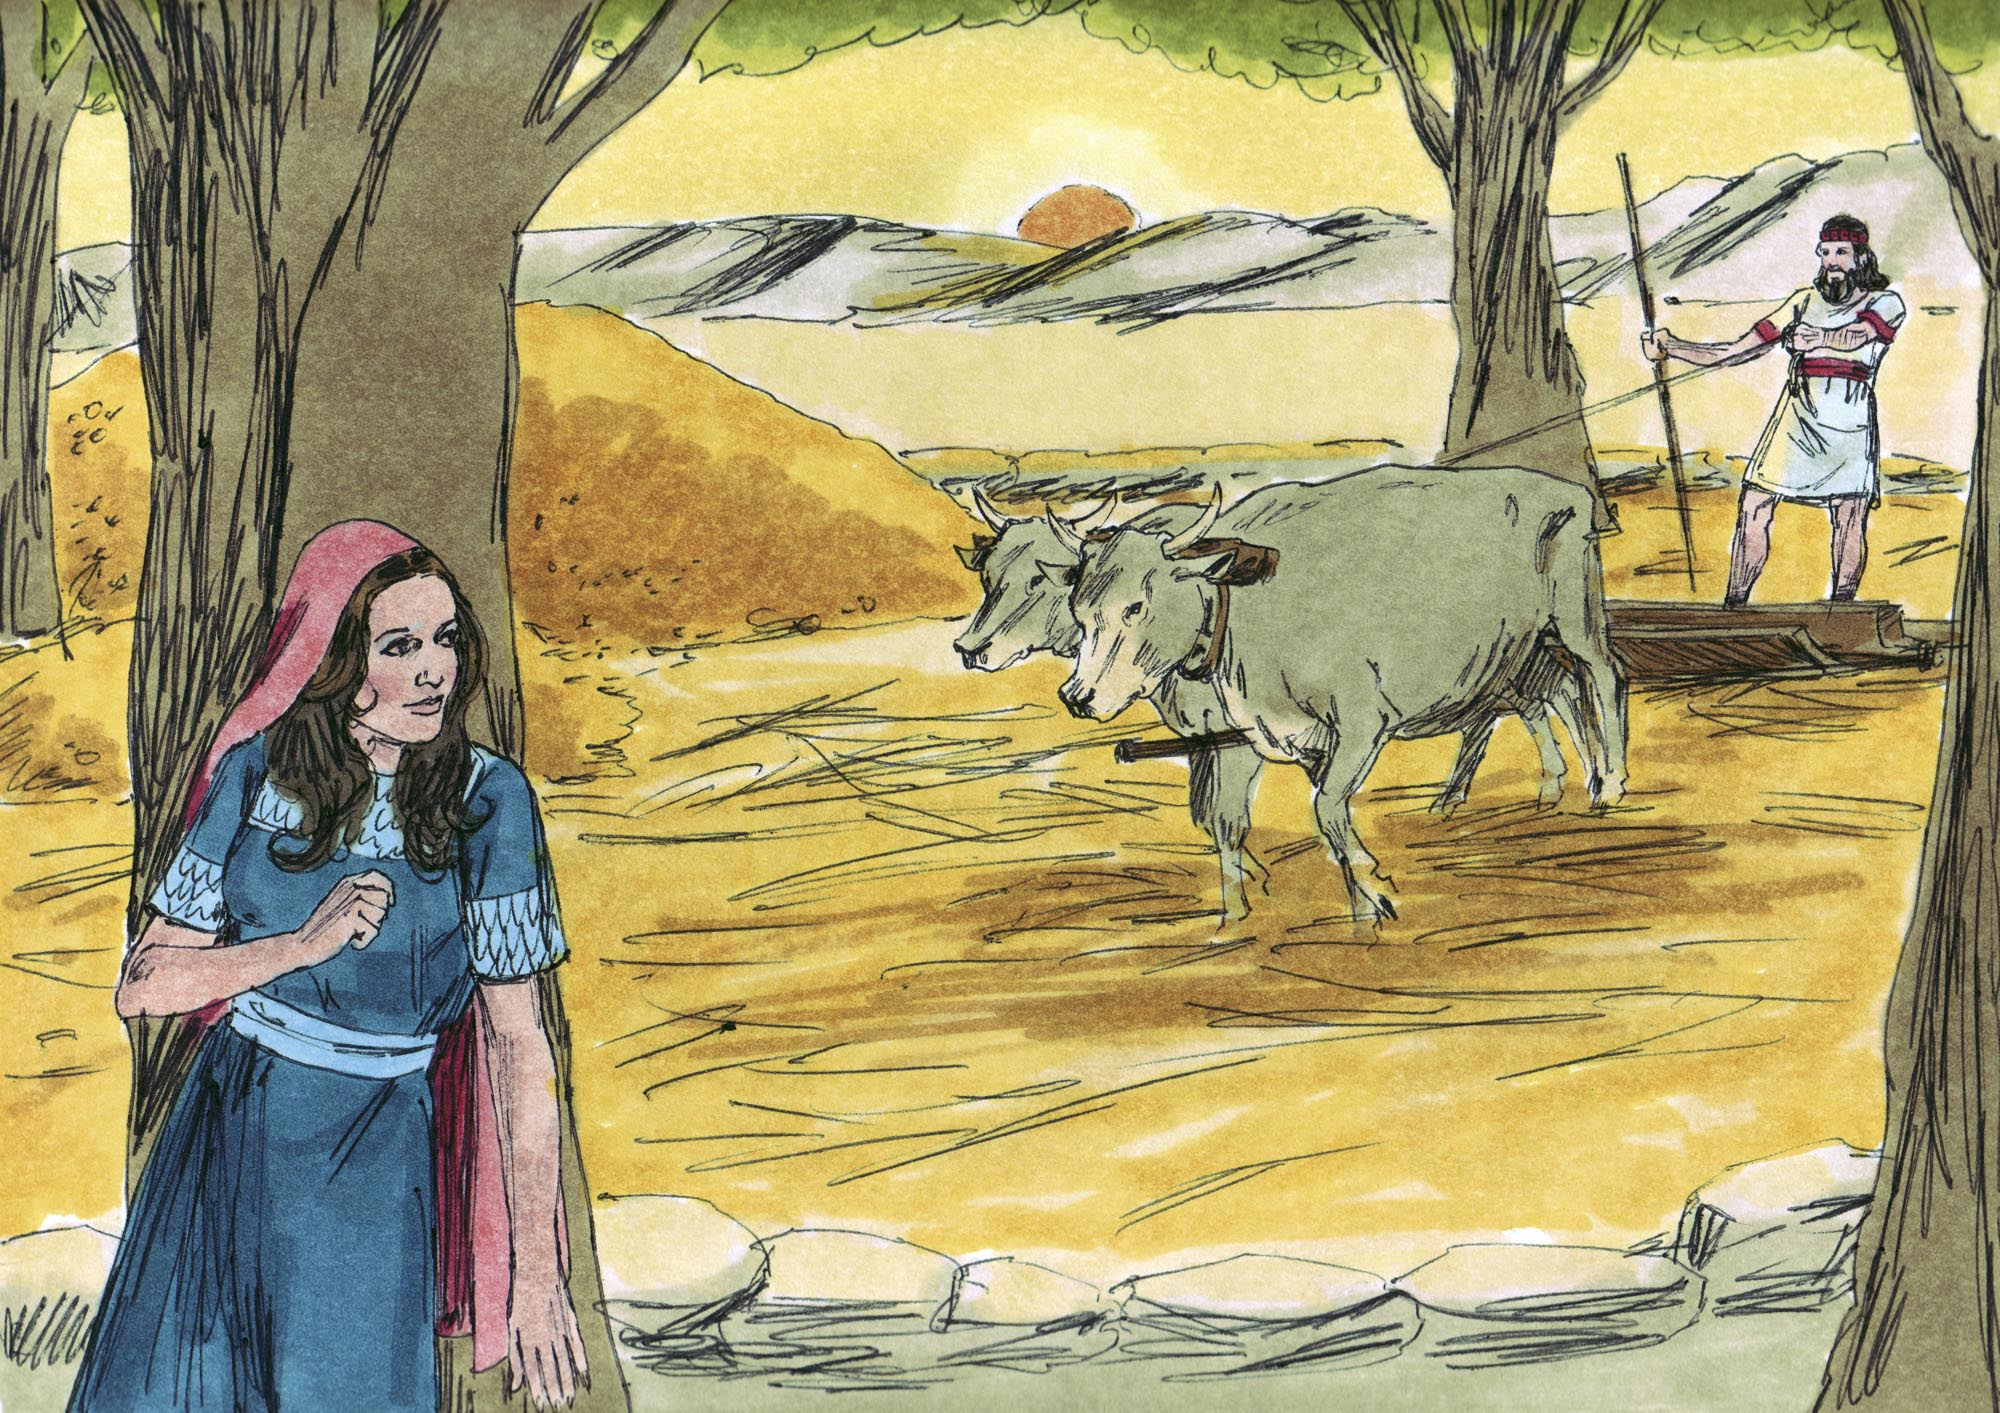 a comparison of the book of ruth in the bible and jane hamiltons book of ruth The book of ruth what metaphors are used in the book of ruth by jane hamilton asked by bookragstutor on 20 aug 04:17.